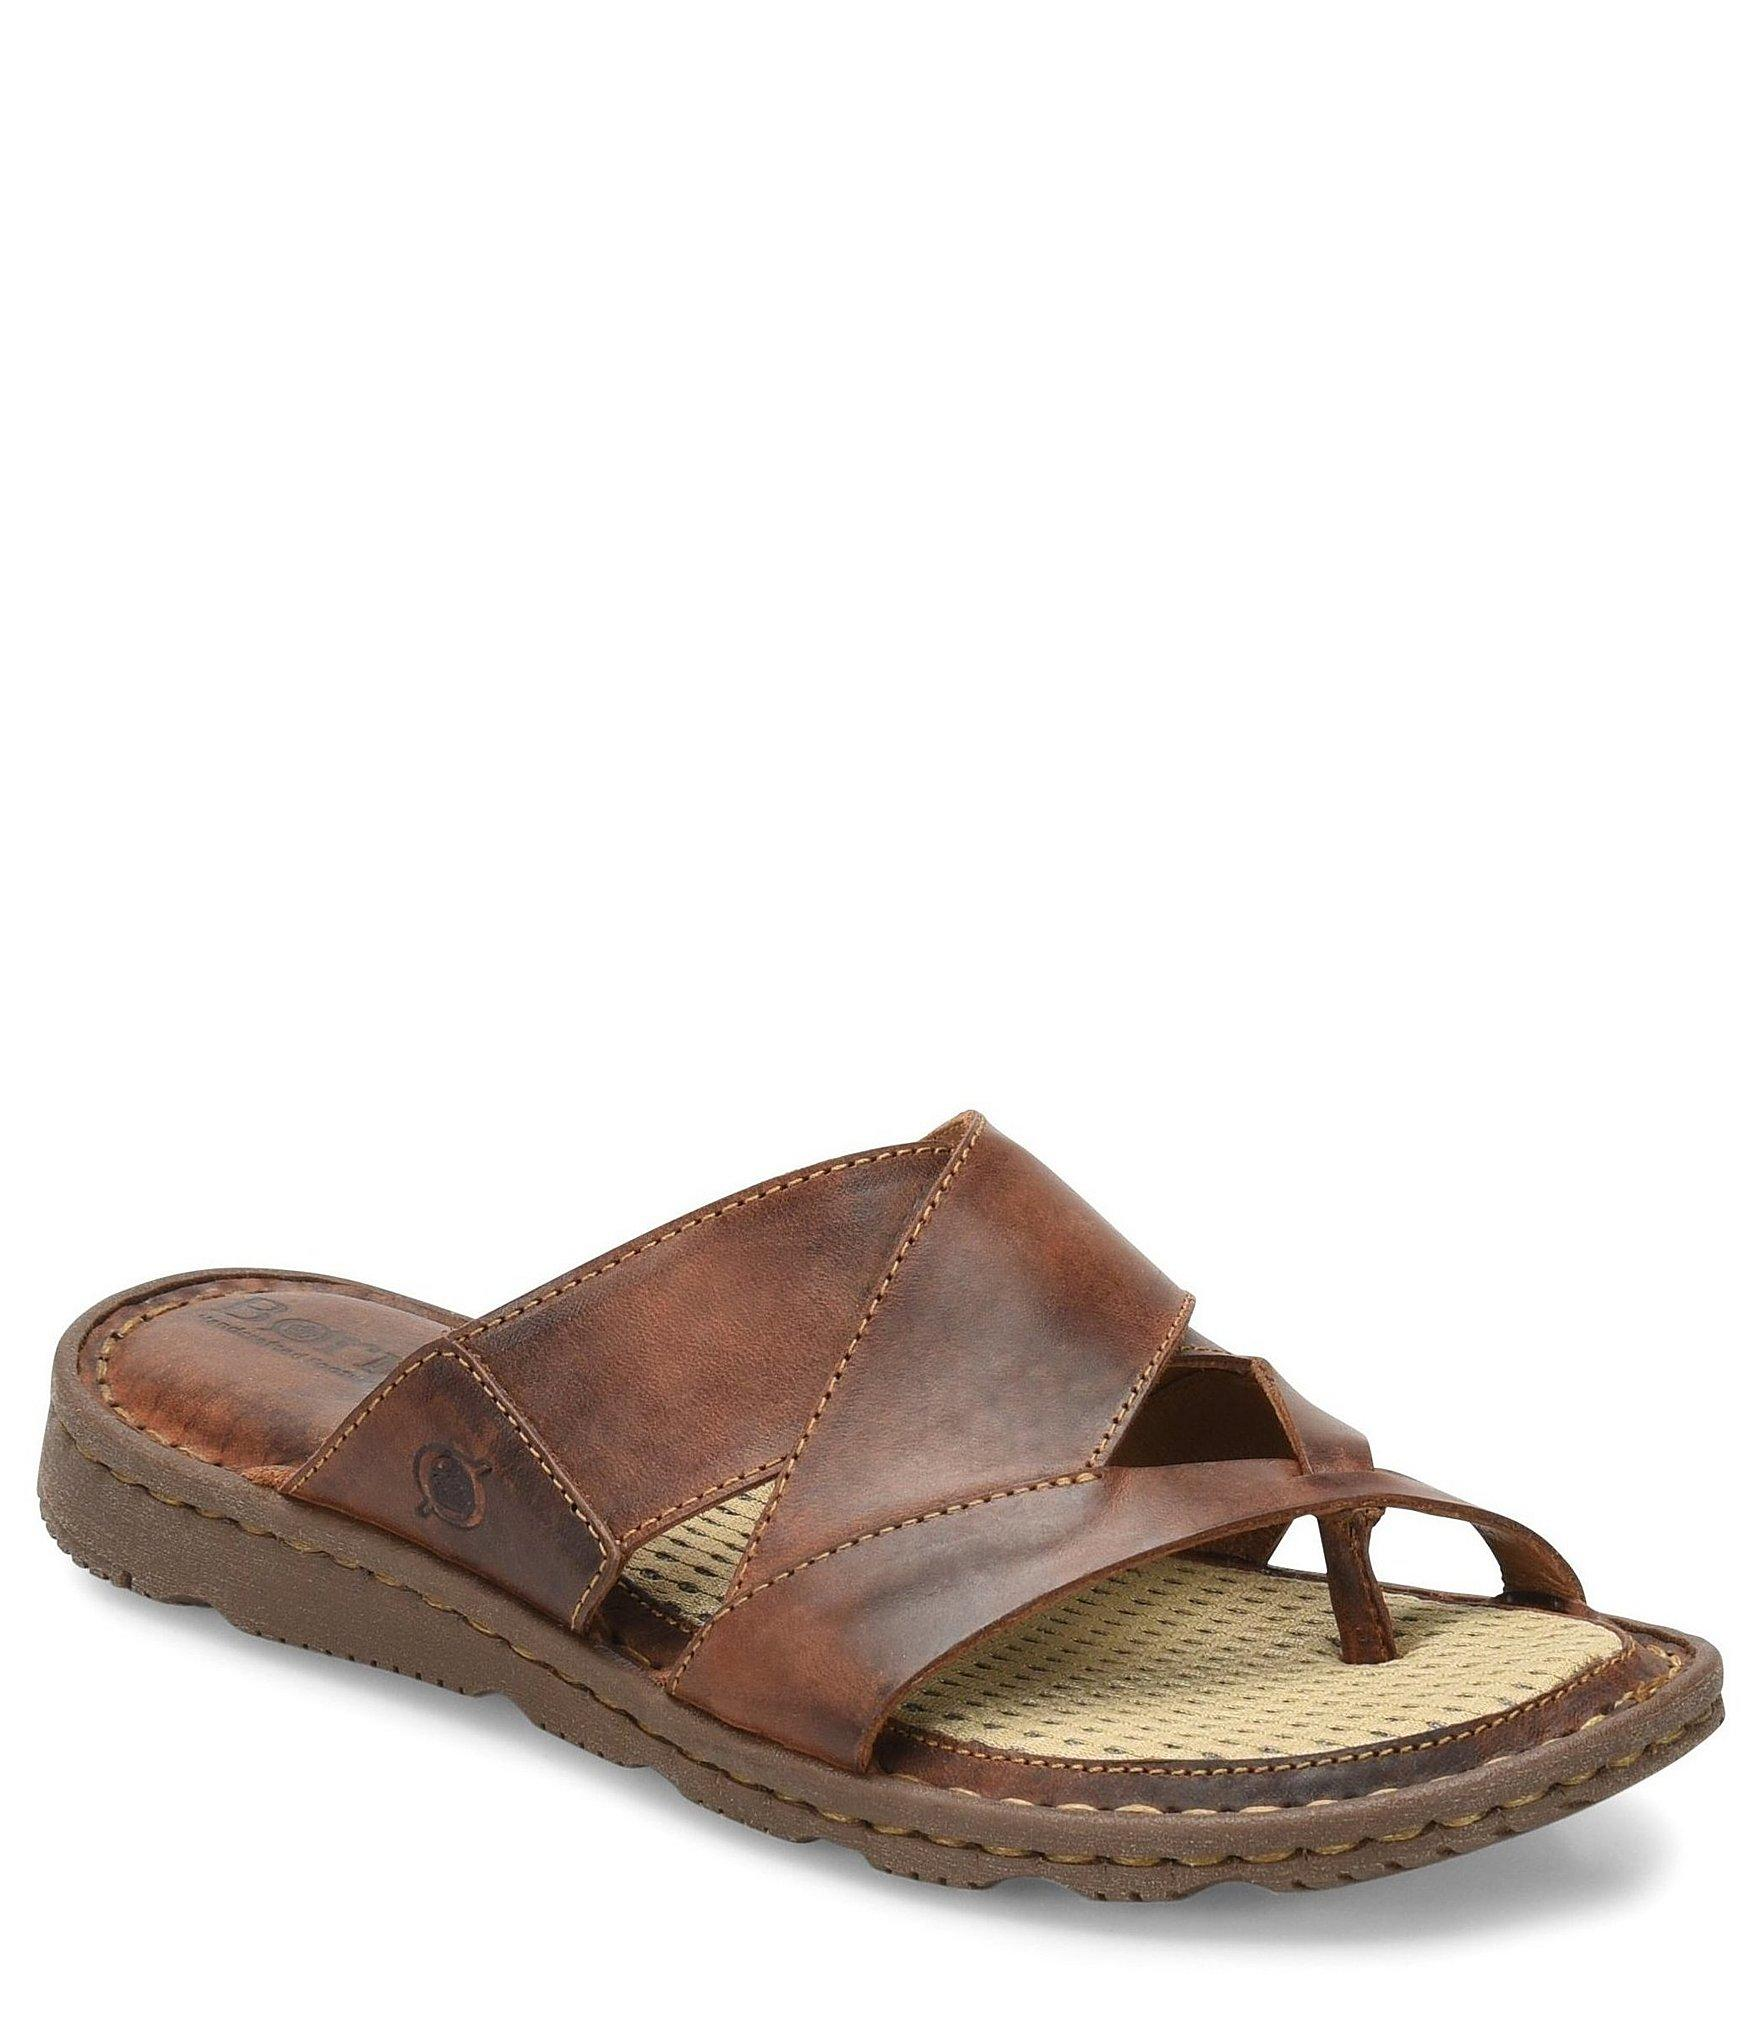 d8a9e40ea453 Lyst - Born Sorja Ii Leather Thong Slide Sandals in Brown